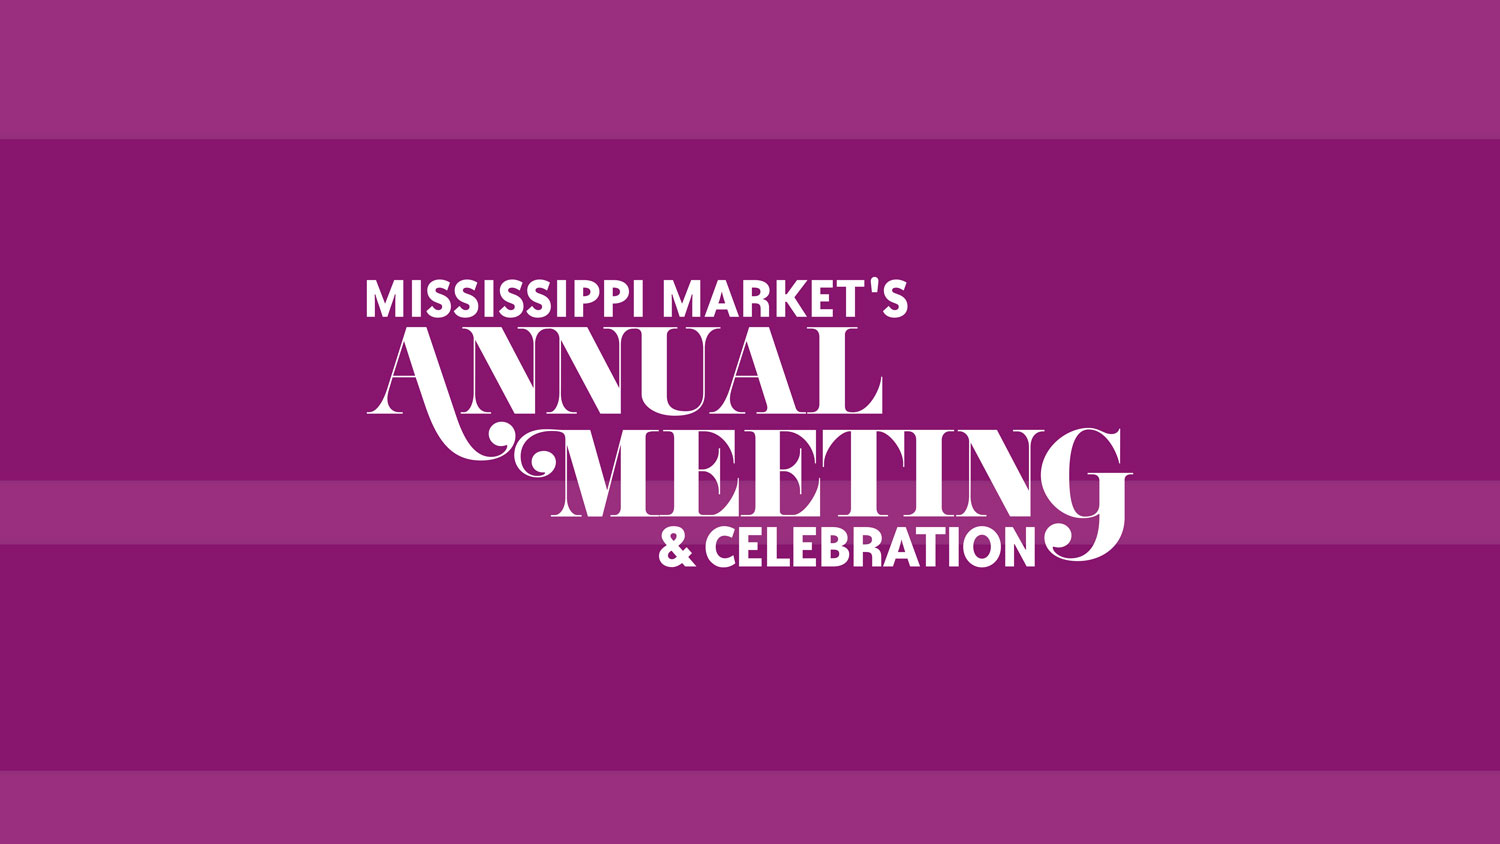 Image for Annual Meeting & Celebration